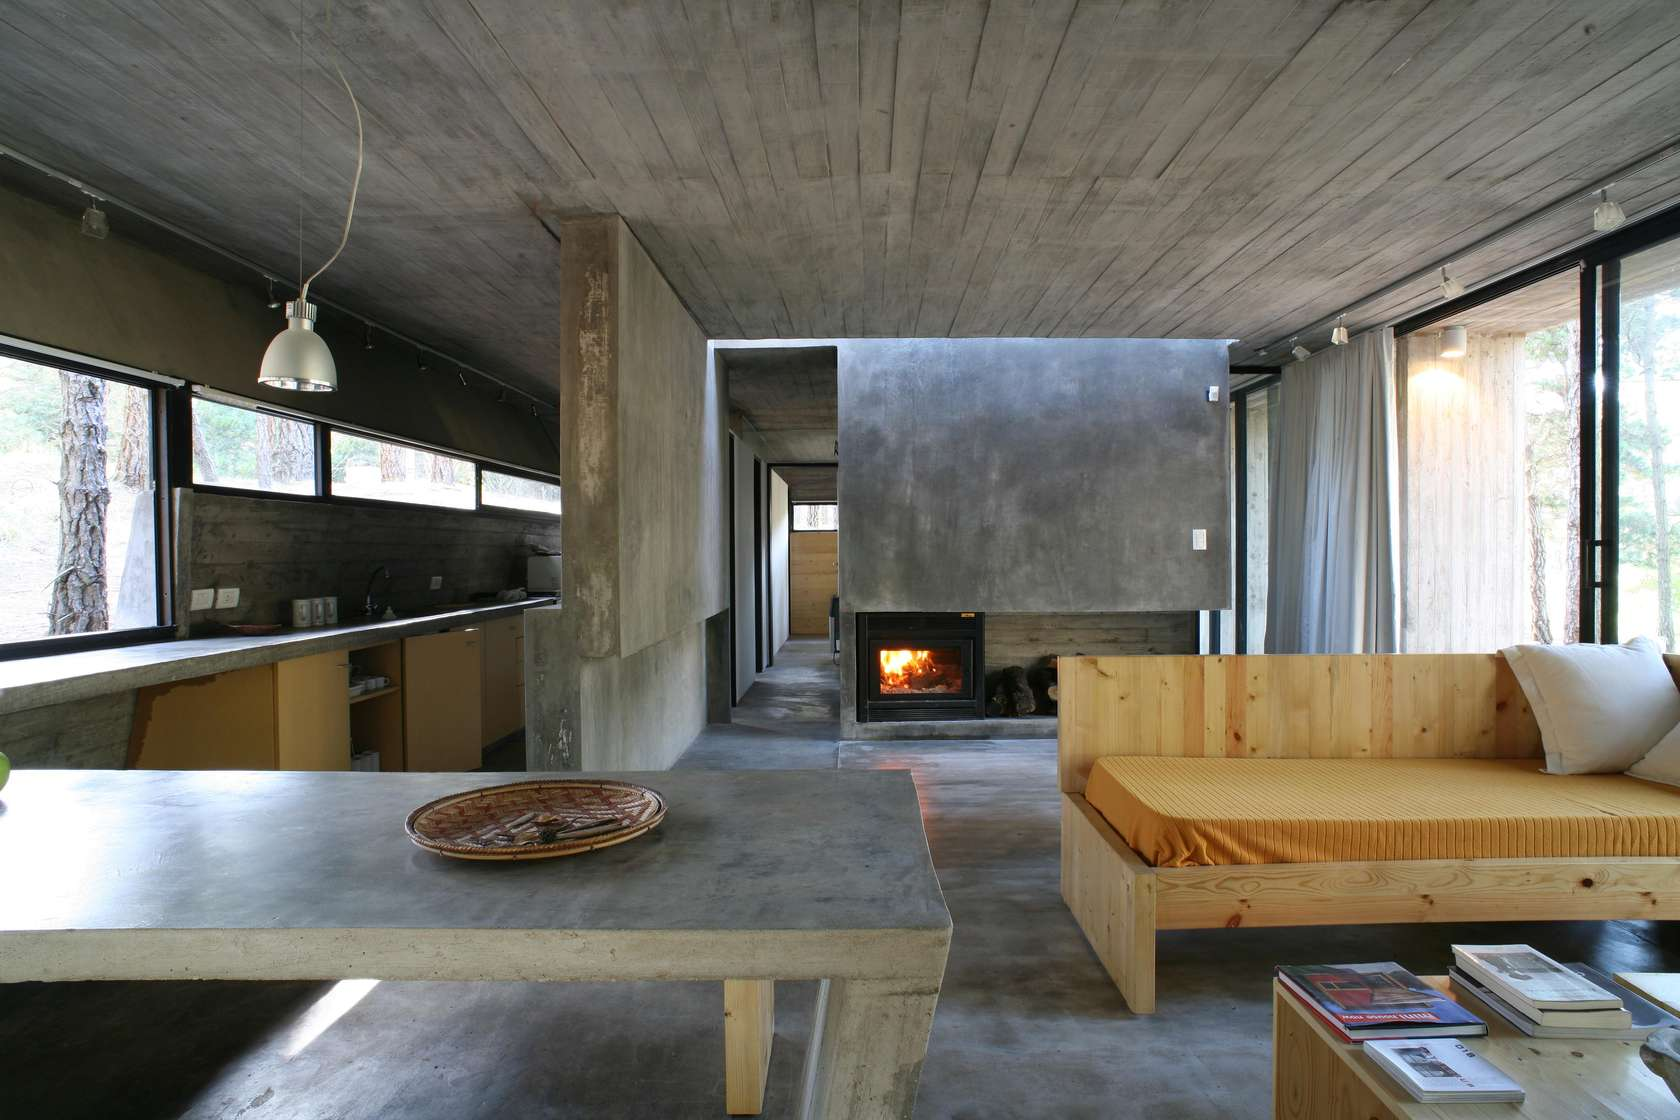 Casa de hormigon architizer for Casas de hormigon